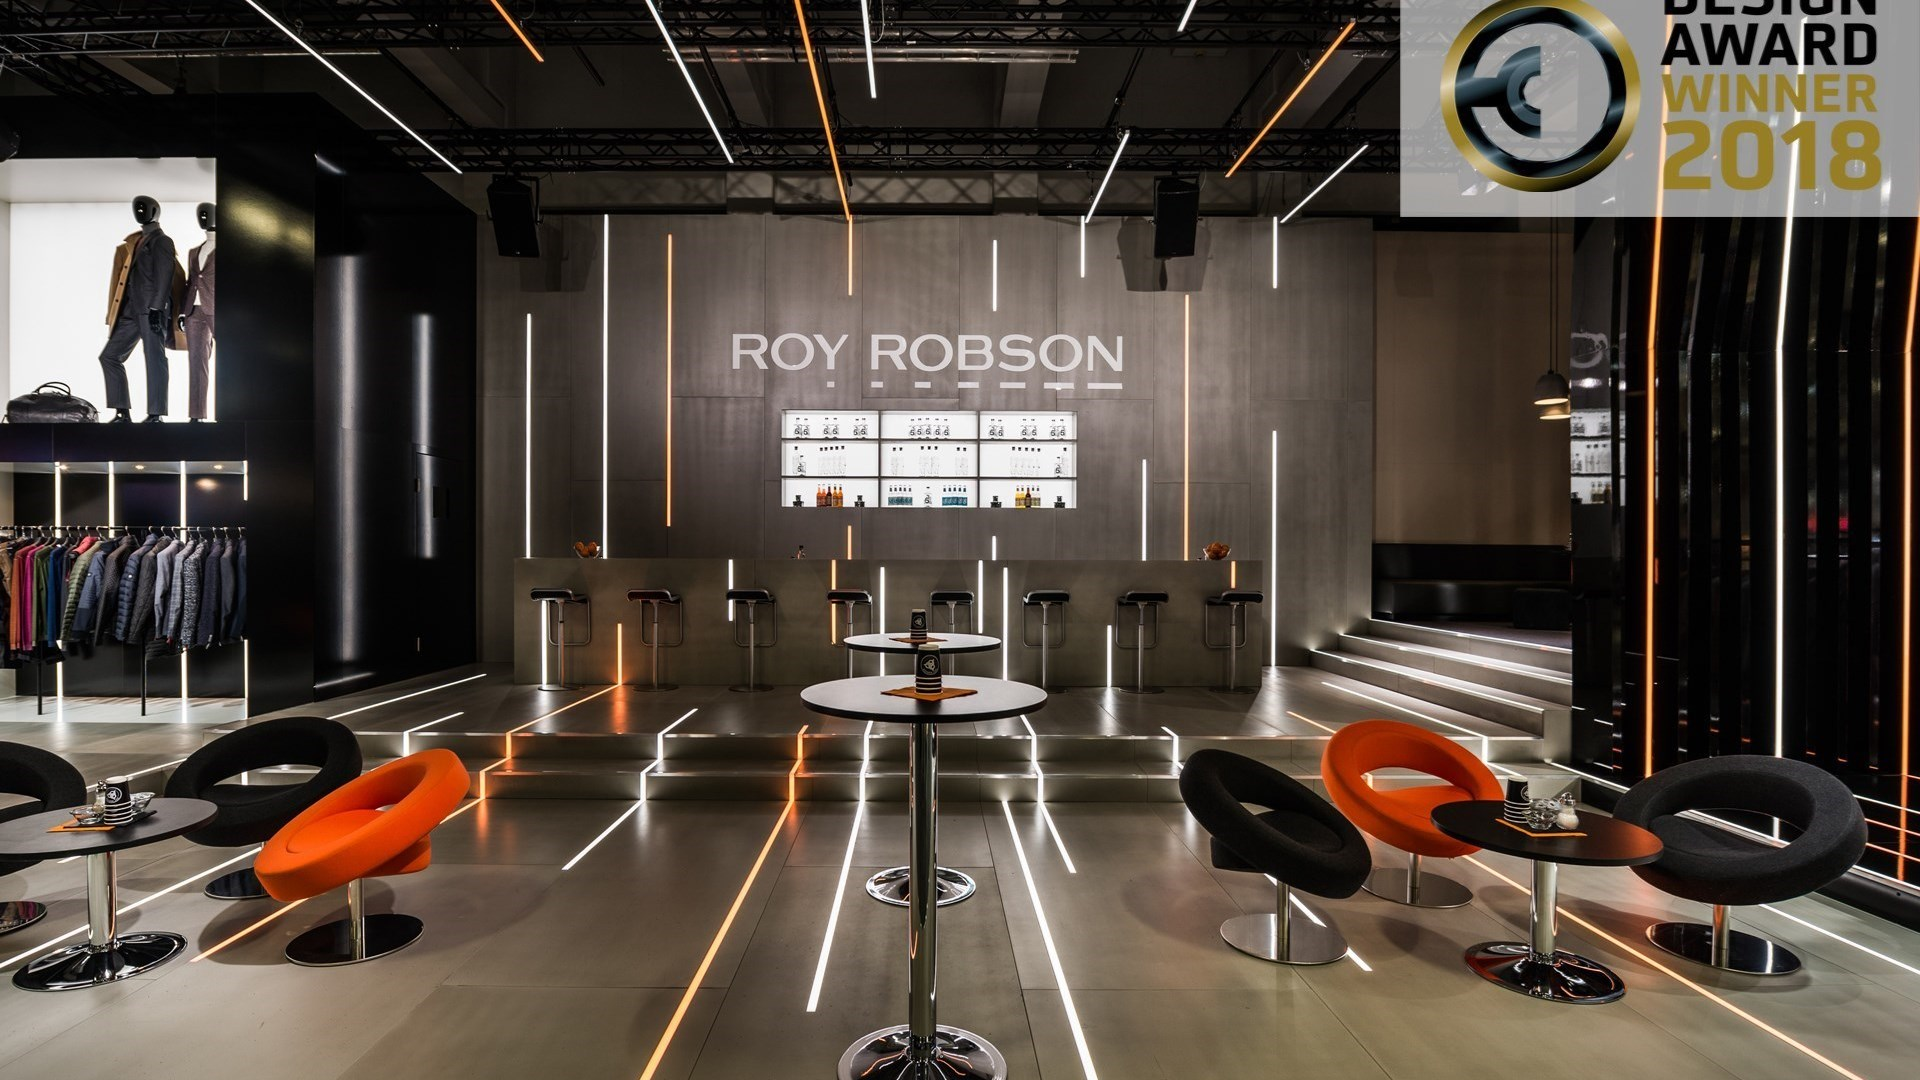 bontempo_design-award-winner-2018-roy-robson_panorama-2017_05-1.jpg